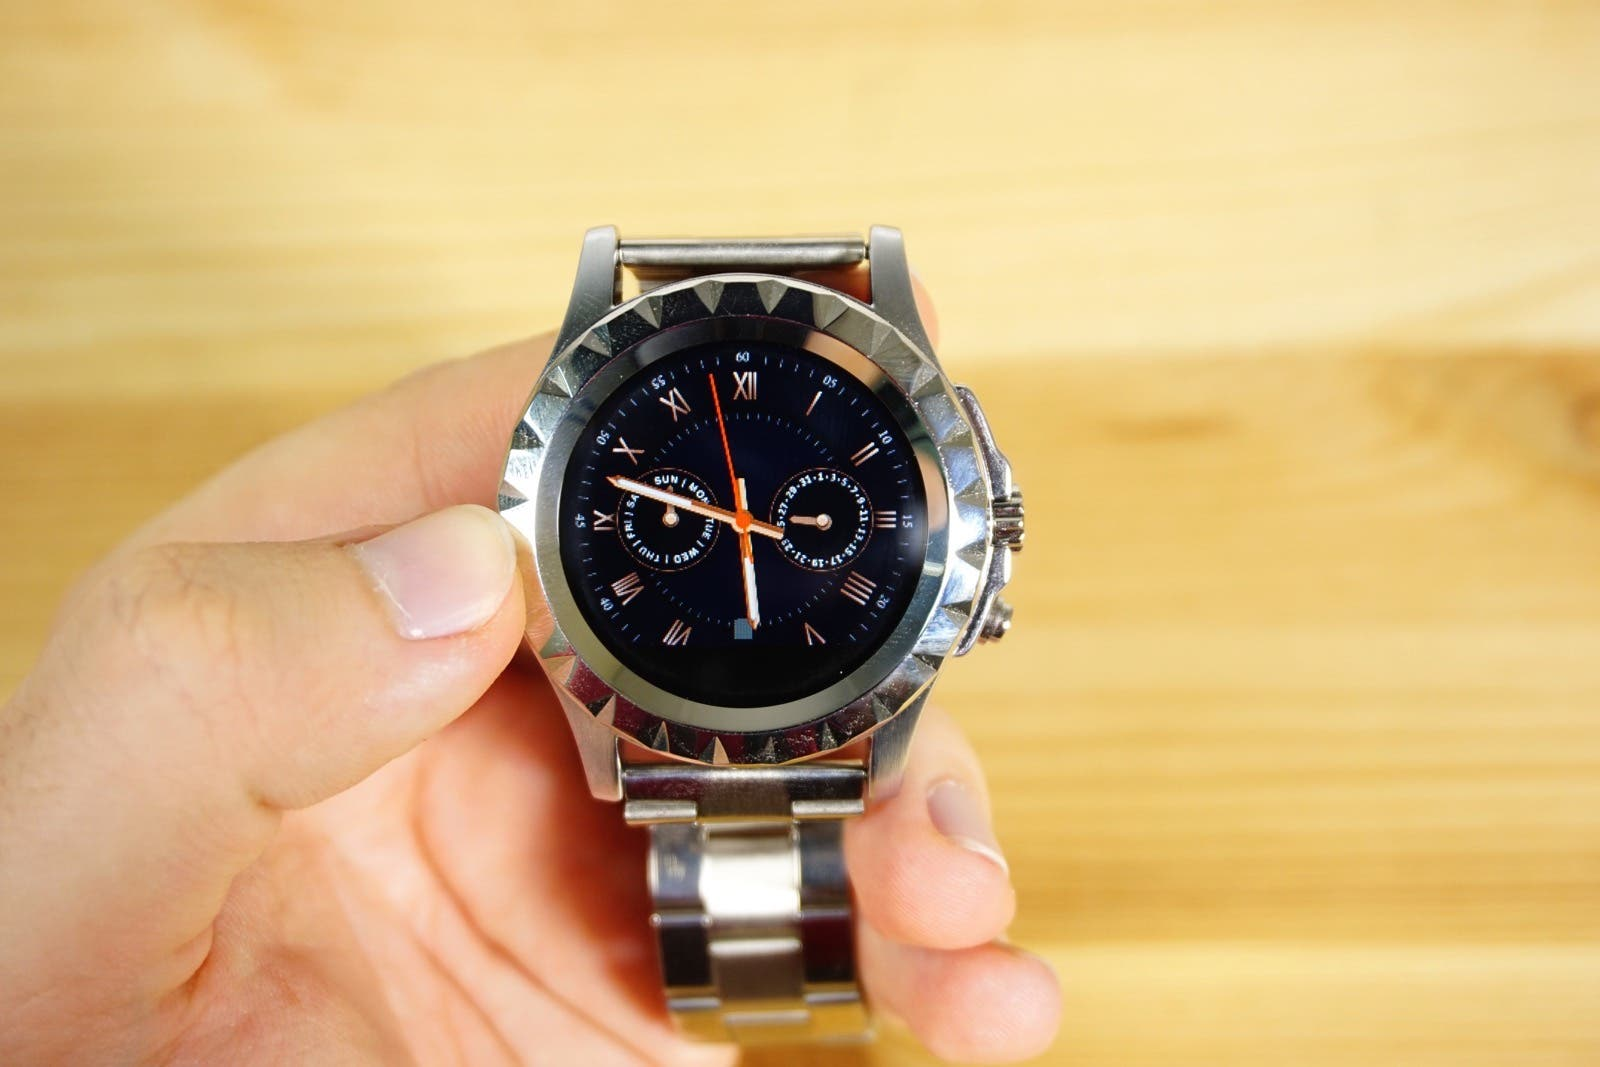 No1 S2 Smartwatch Display